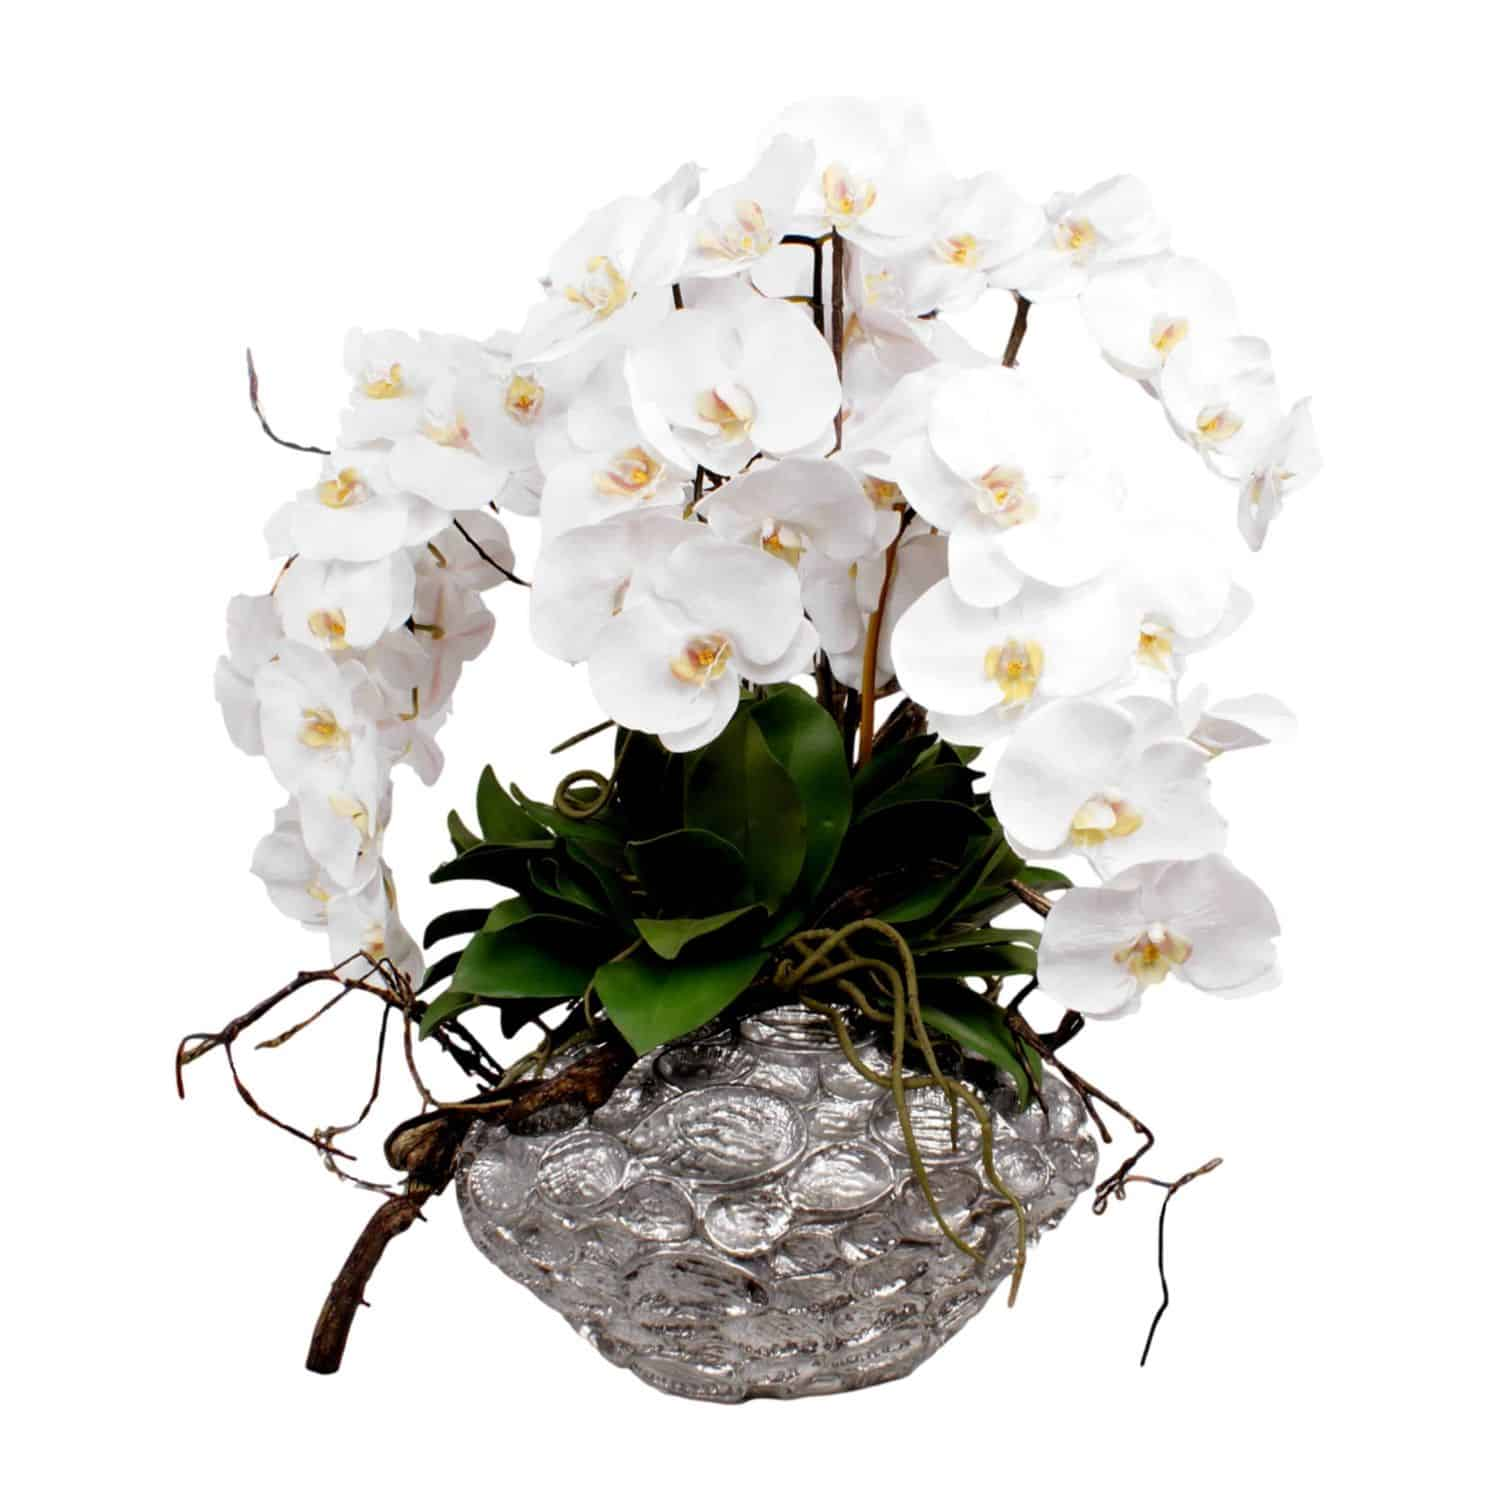 Shop for our large white head phalaenopsis orchid silk flower. Each gorgeous head has a natural look with lifelike detail. Arranged with artificial orchid leaves.